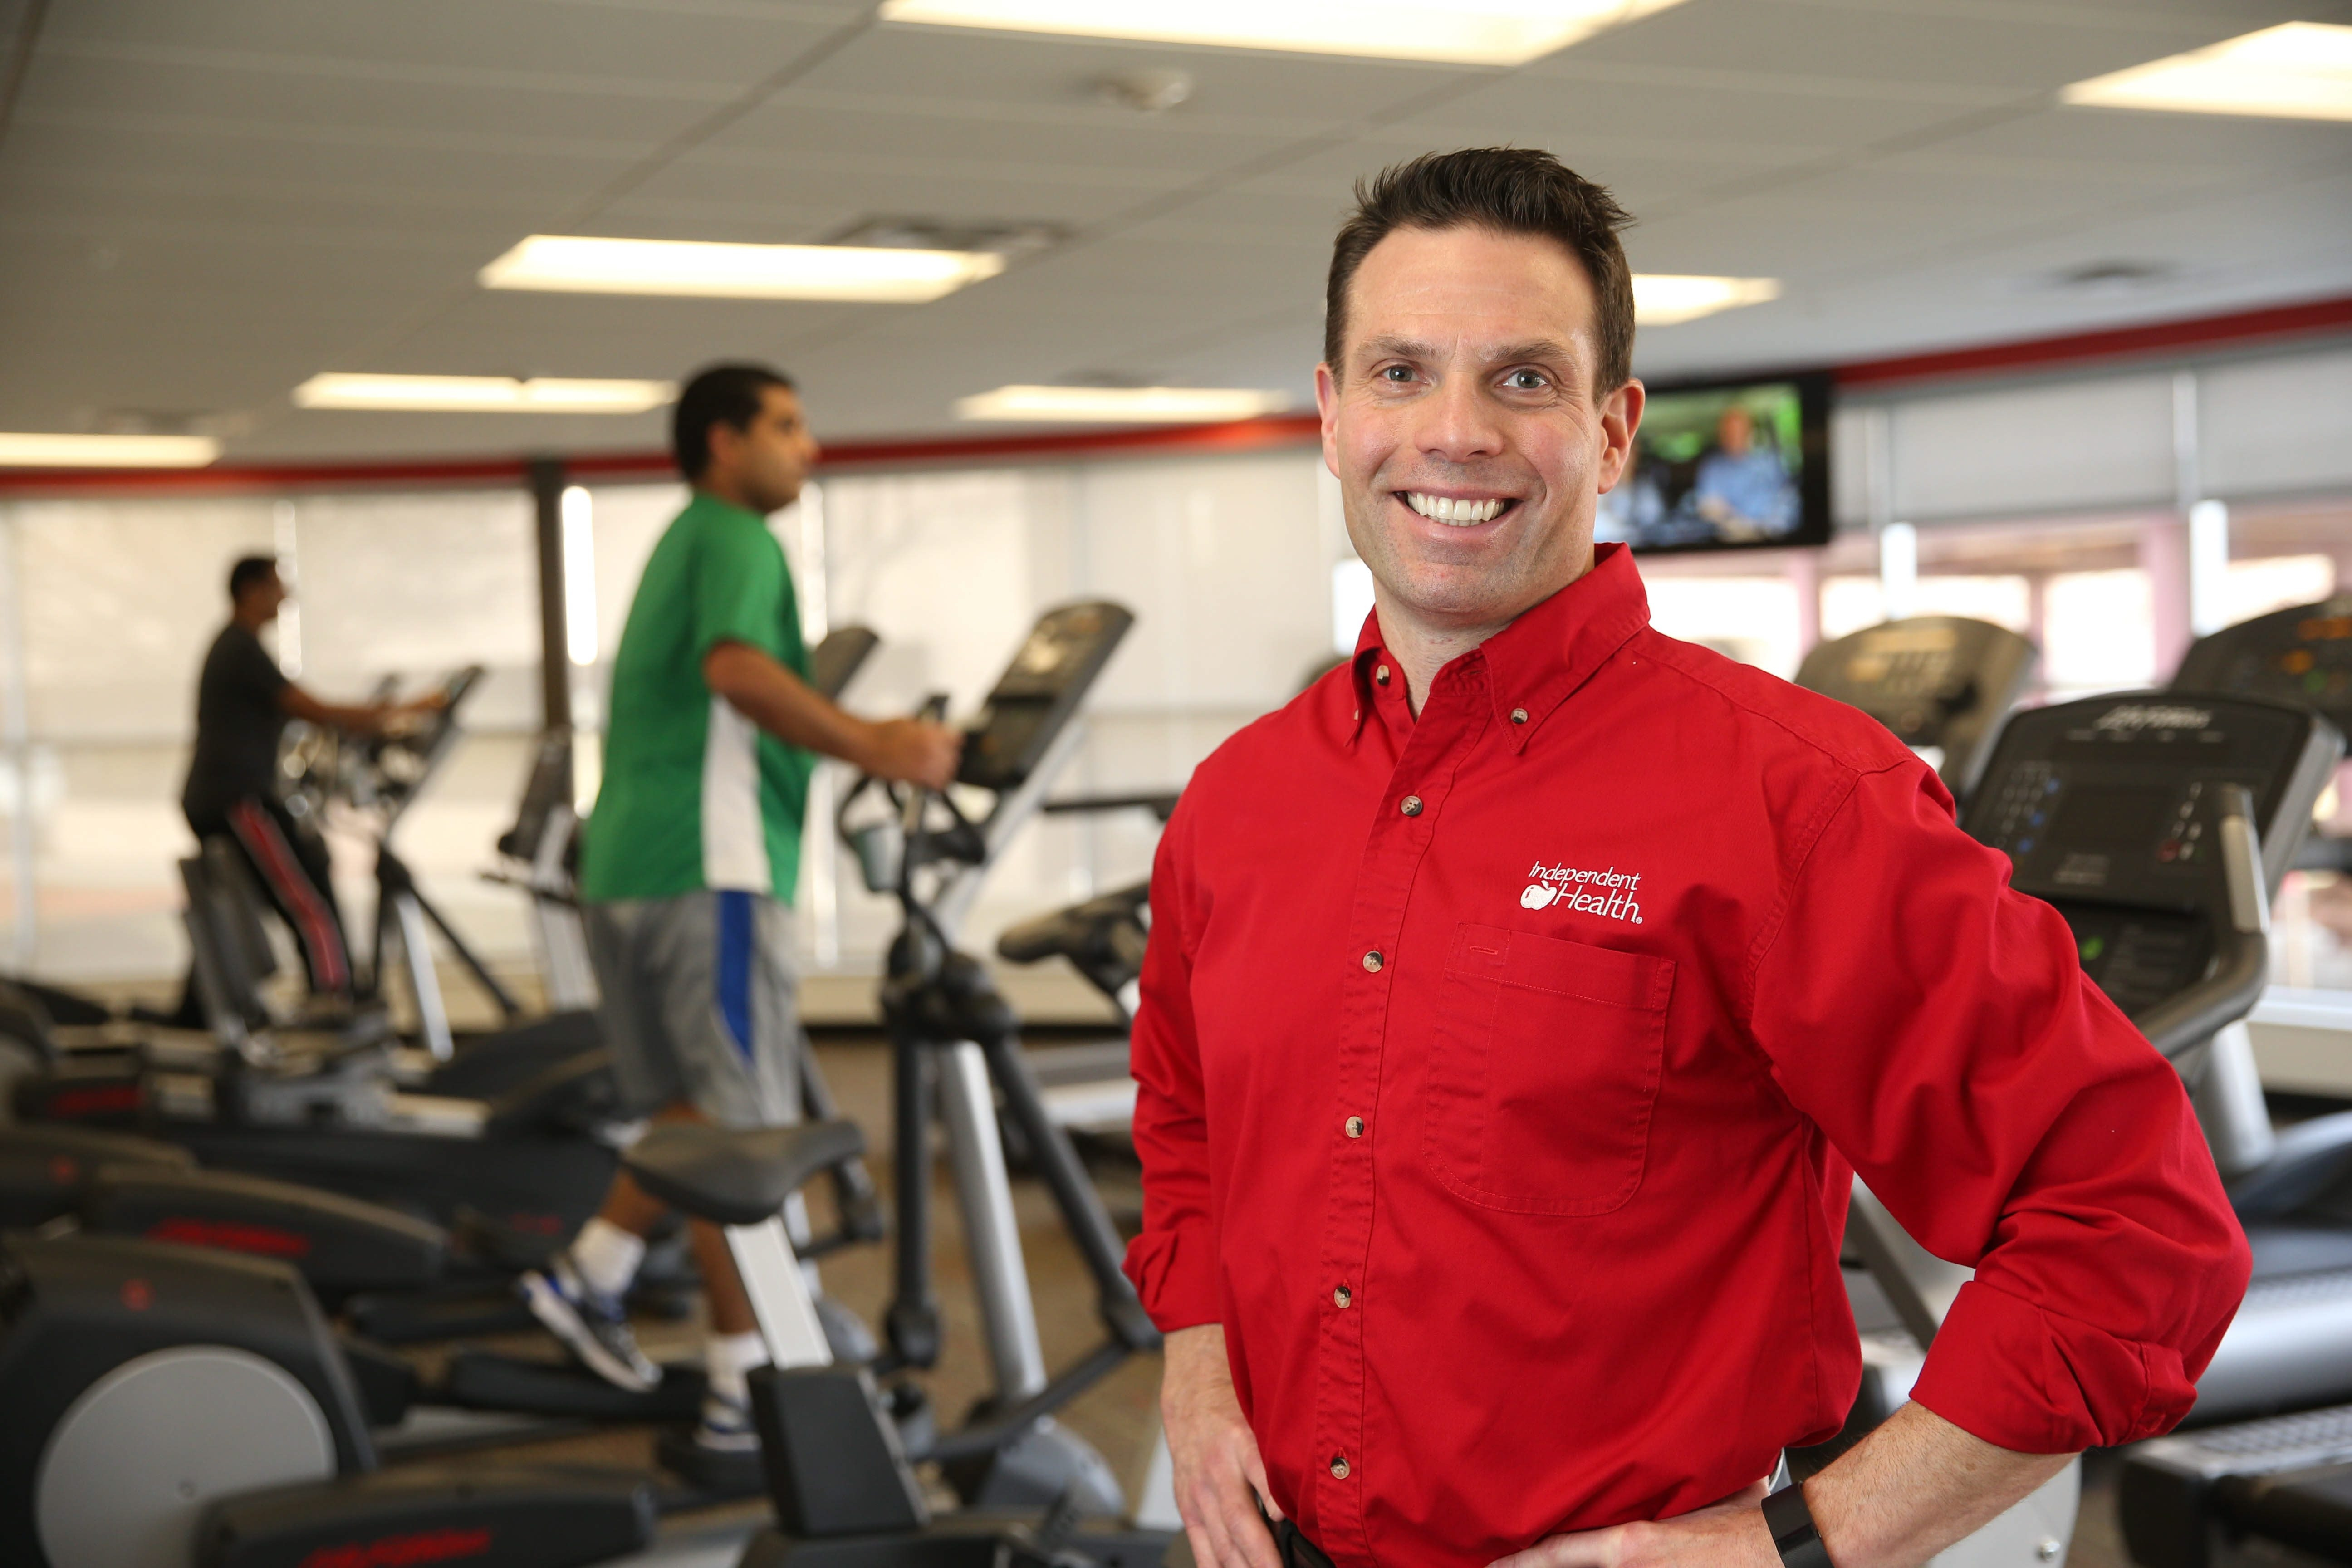 """Employers are taking a little bit more of an aggressive approach."" Chadd Soto, manager of wellness services at Independent Health, said about wellness in the workplace."